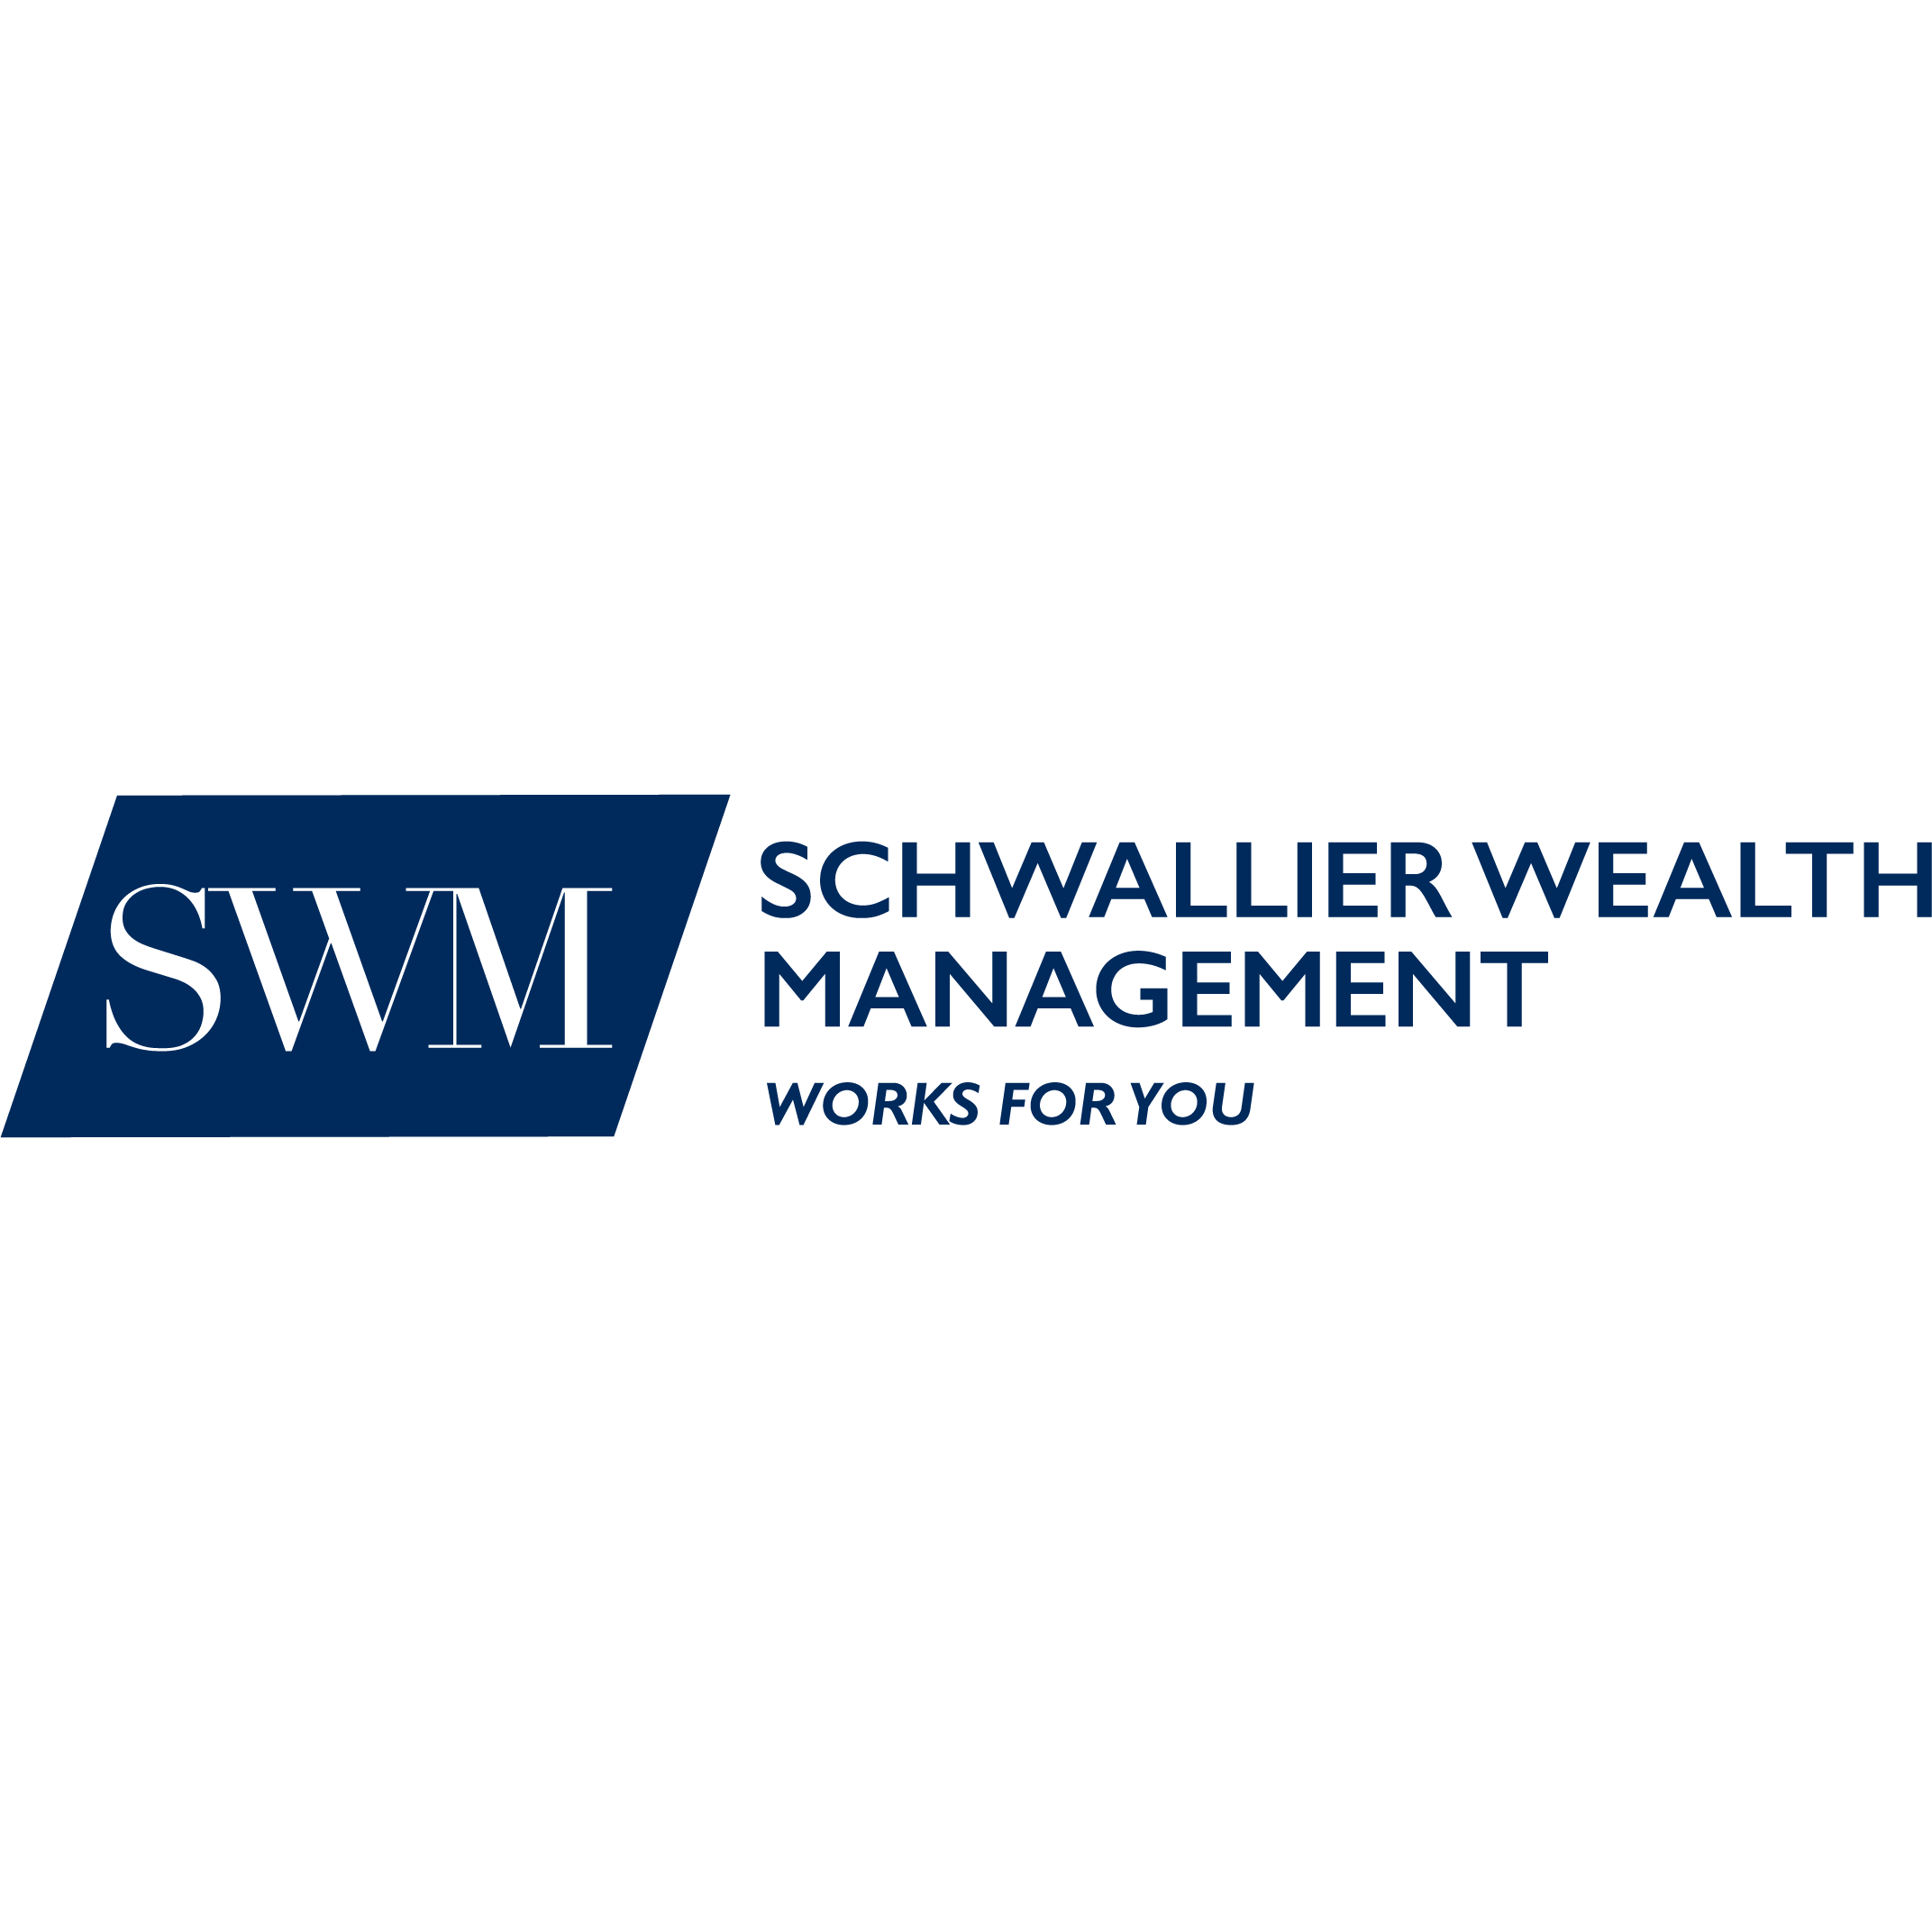 Schwallier Wealth Management LLC